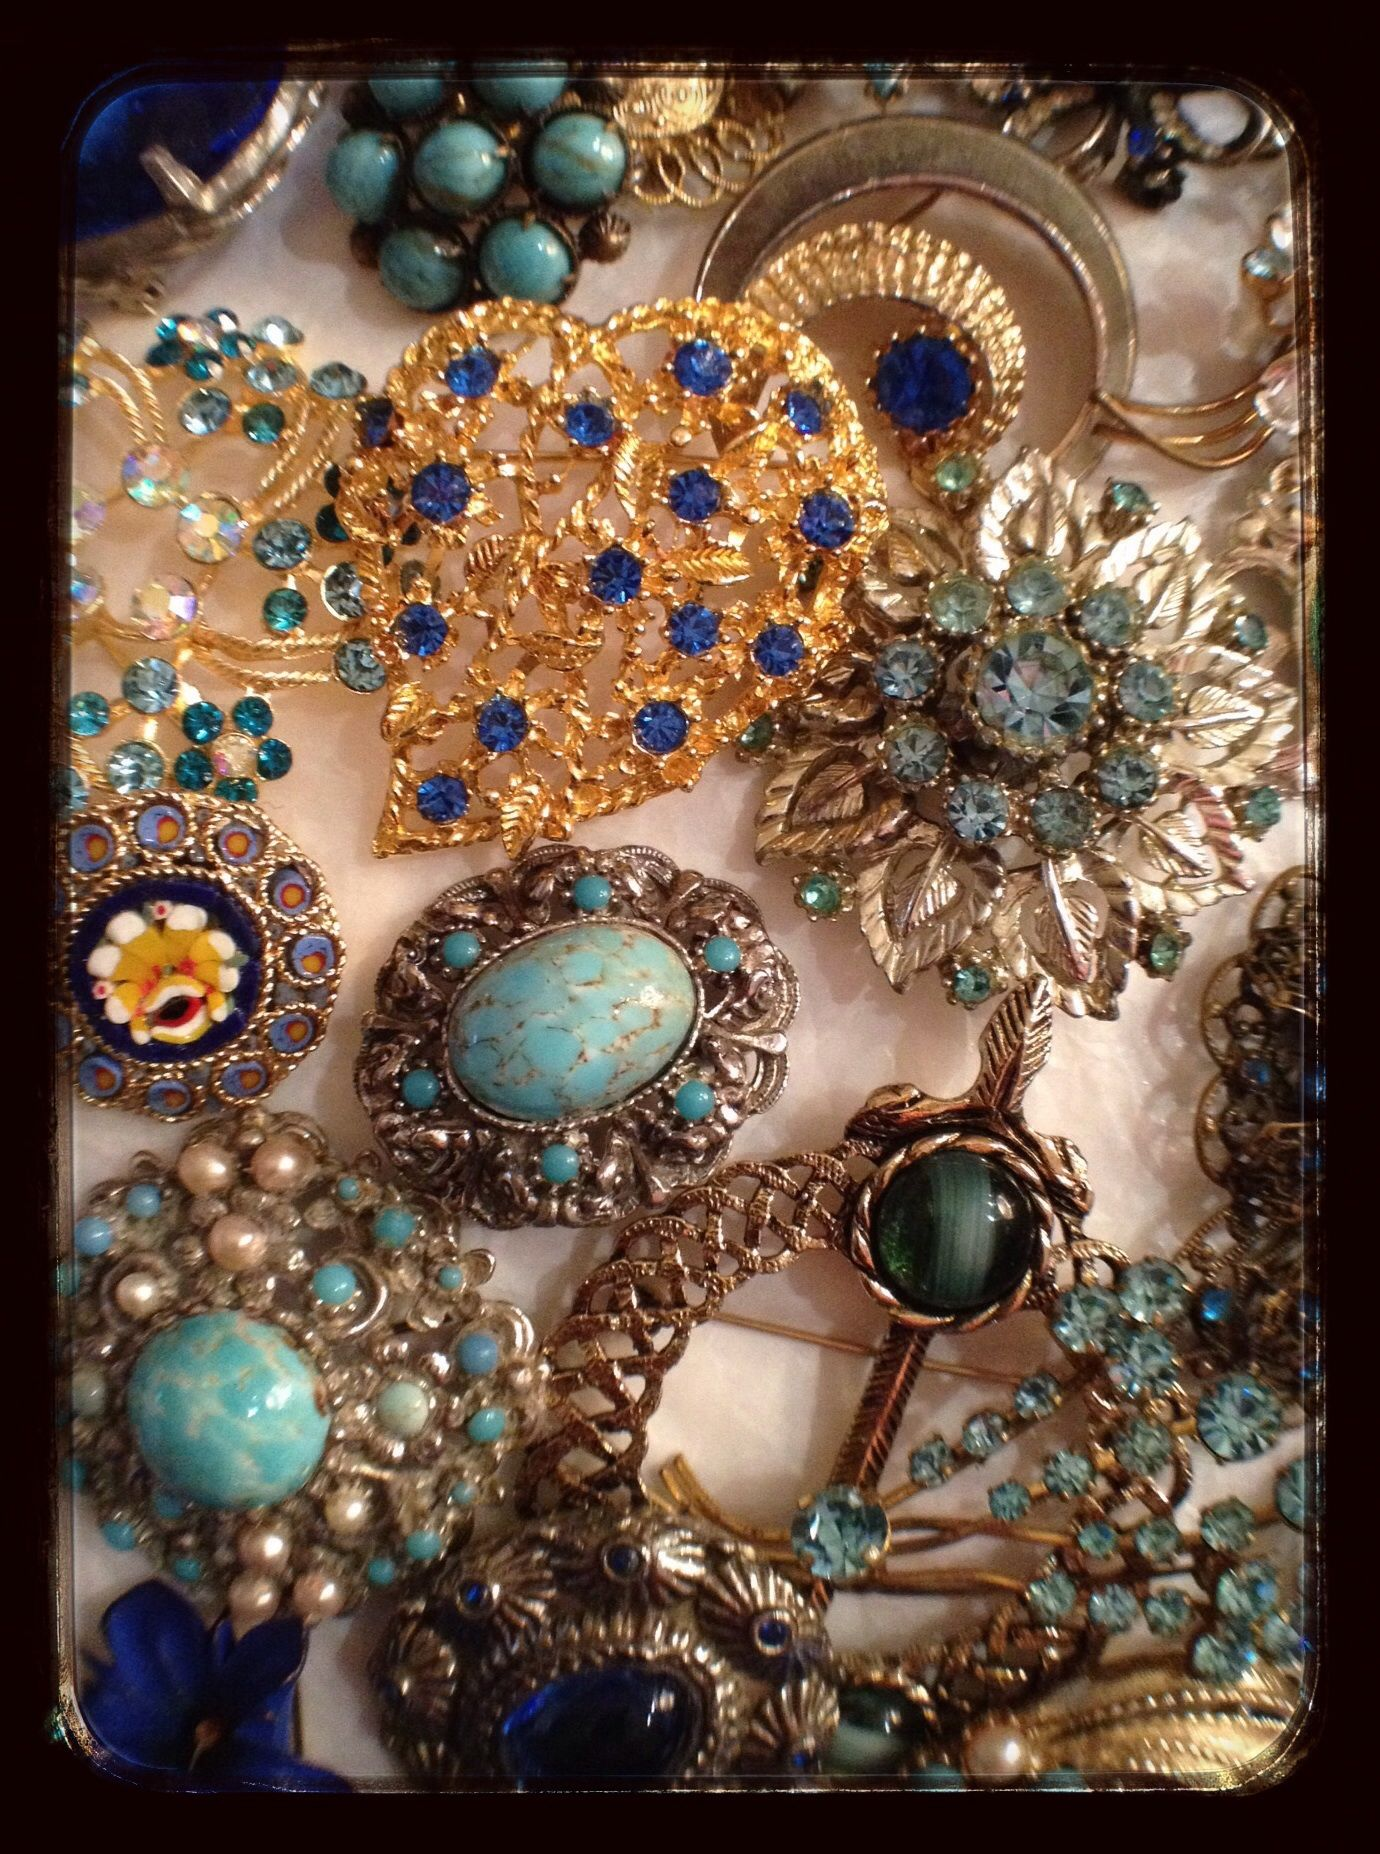 Blue brooches. https://www.facebook.com/pages/The-Jewellery-Cloud/160517894095561